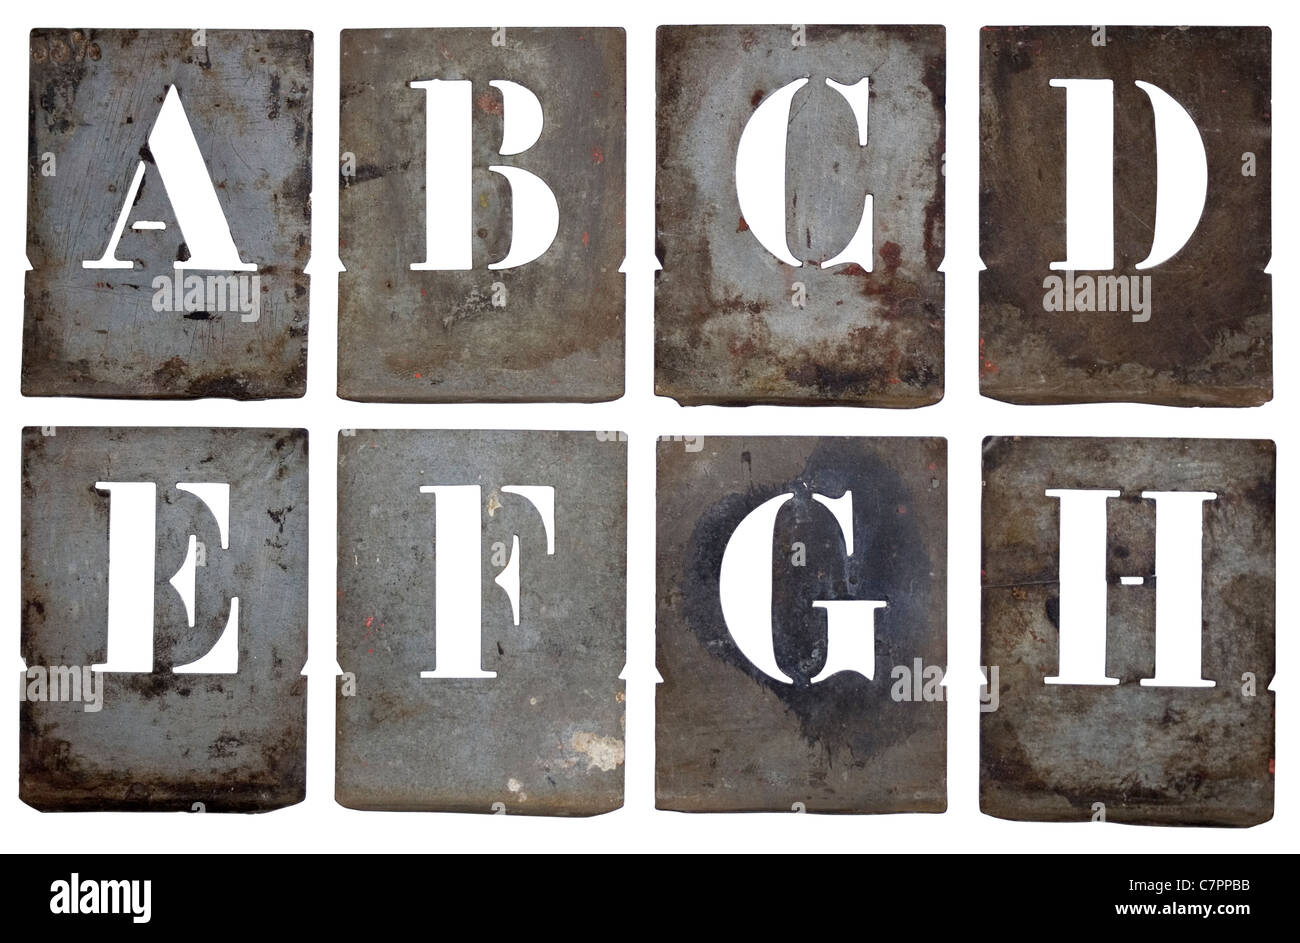 Old Metal Letters Adorable Old French Metal Stencil Letters Part Of An Entire Alphabet Design Inspiration